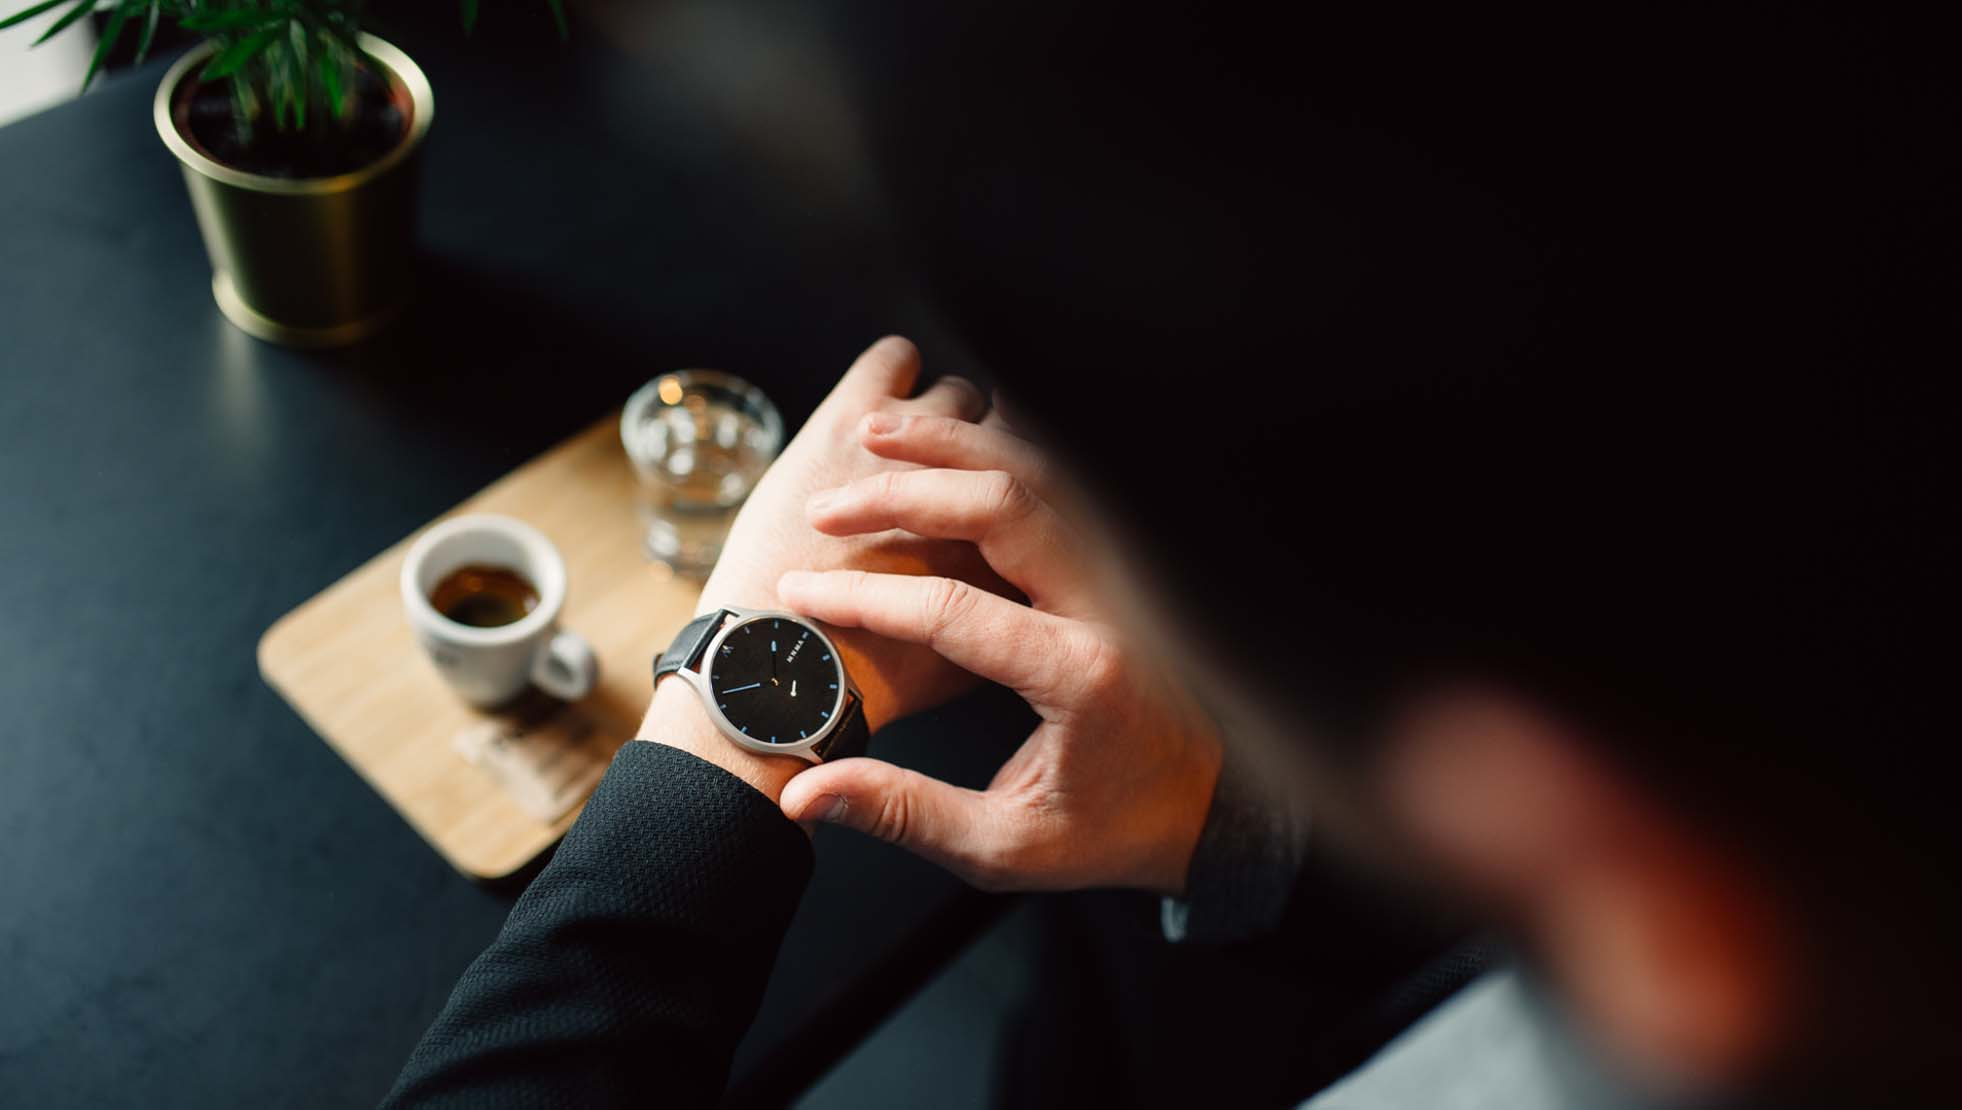 Man drinking espresso and looking what time it is